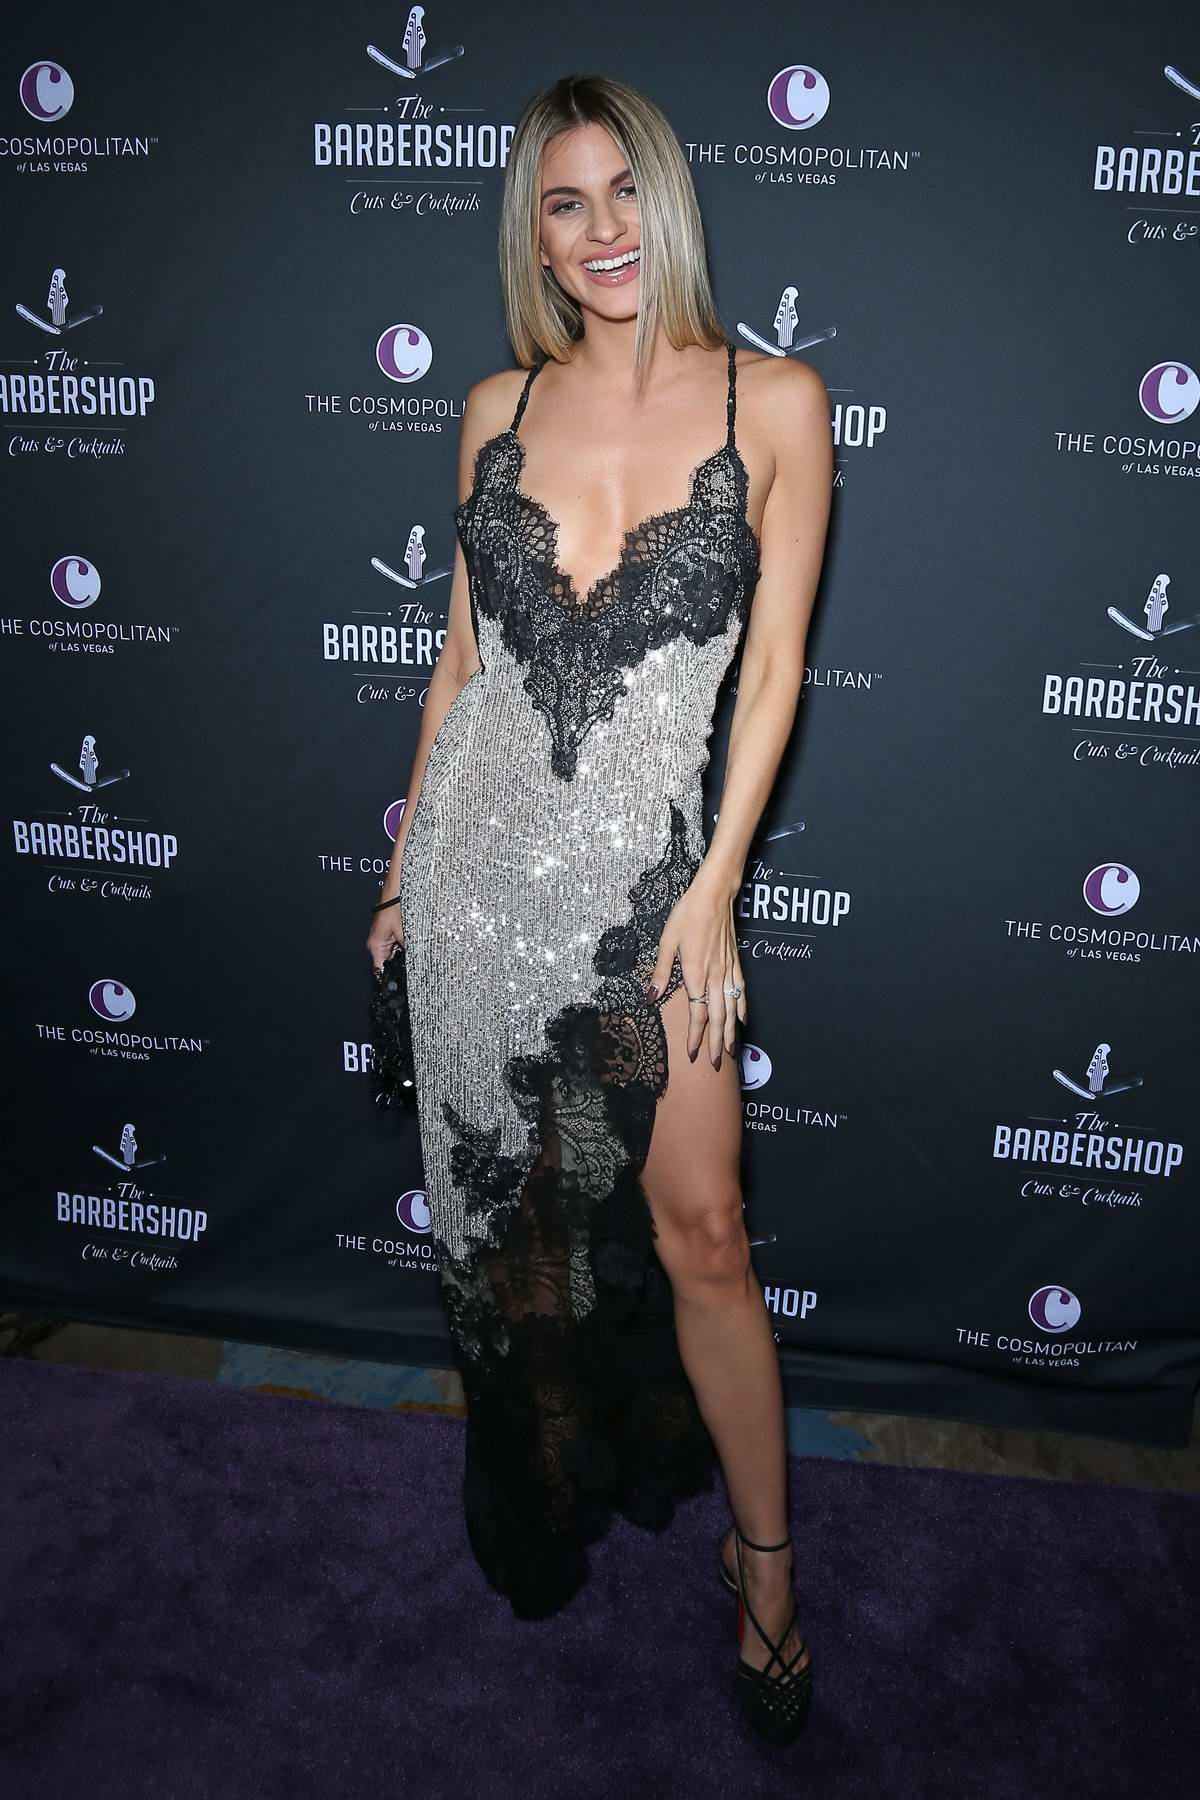 Rachel McCord attends the Grand Opening Weekend The Barbershop Cuts and Cocktails Day 2 in Las Vegas, Nevada